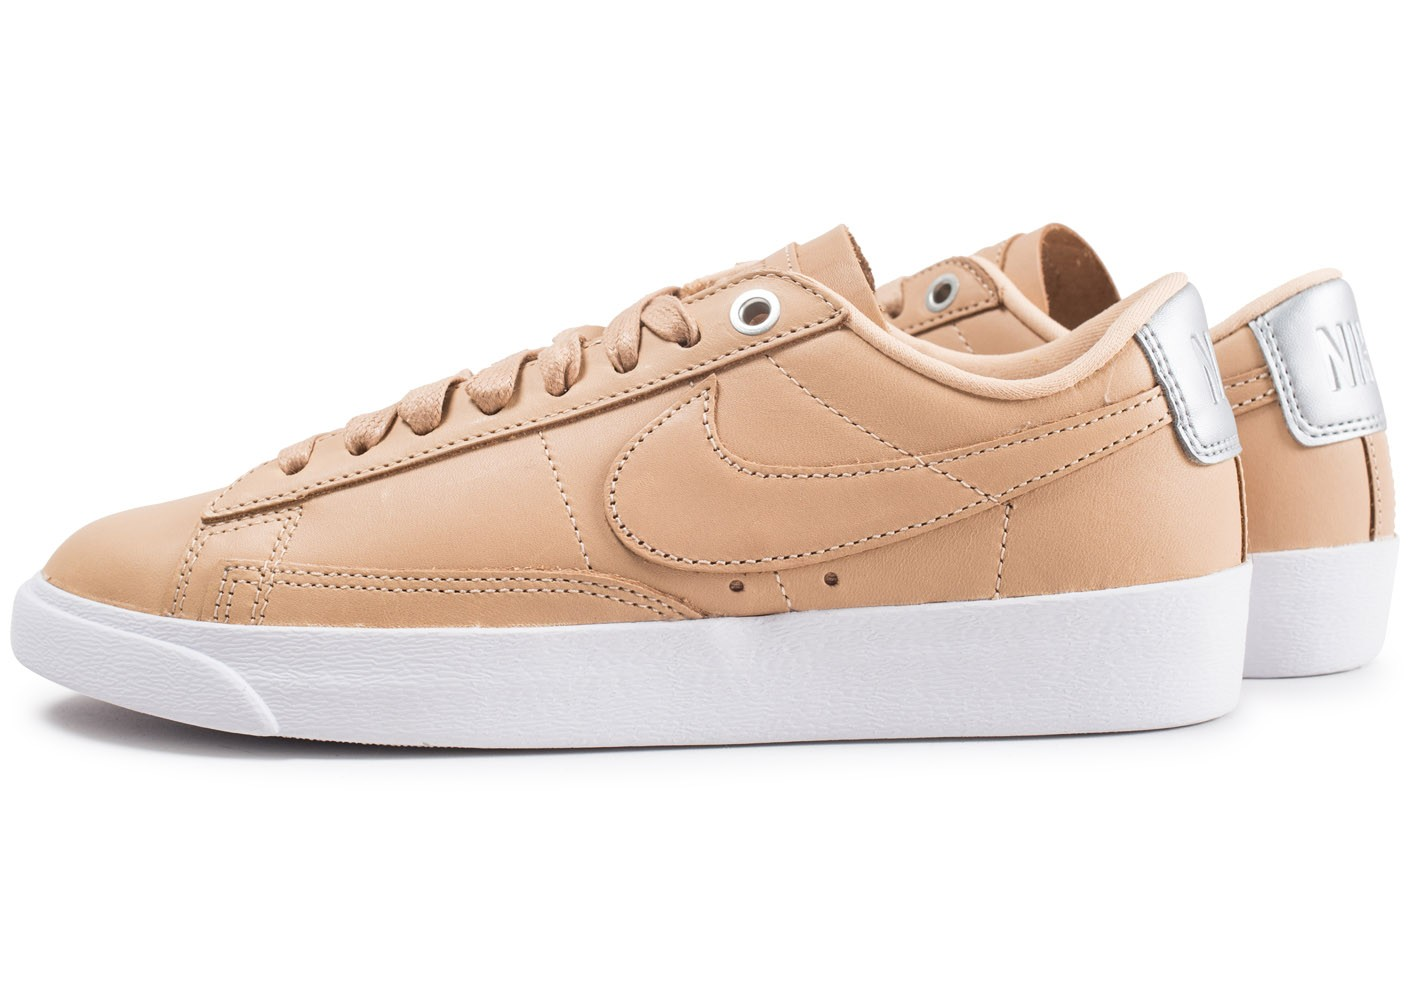 better wholesale catch Nike Blazer Low Premium femme beige - Chaussures Chaussures ...